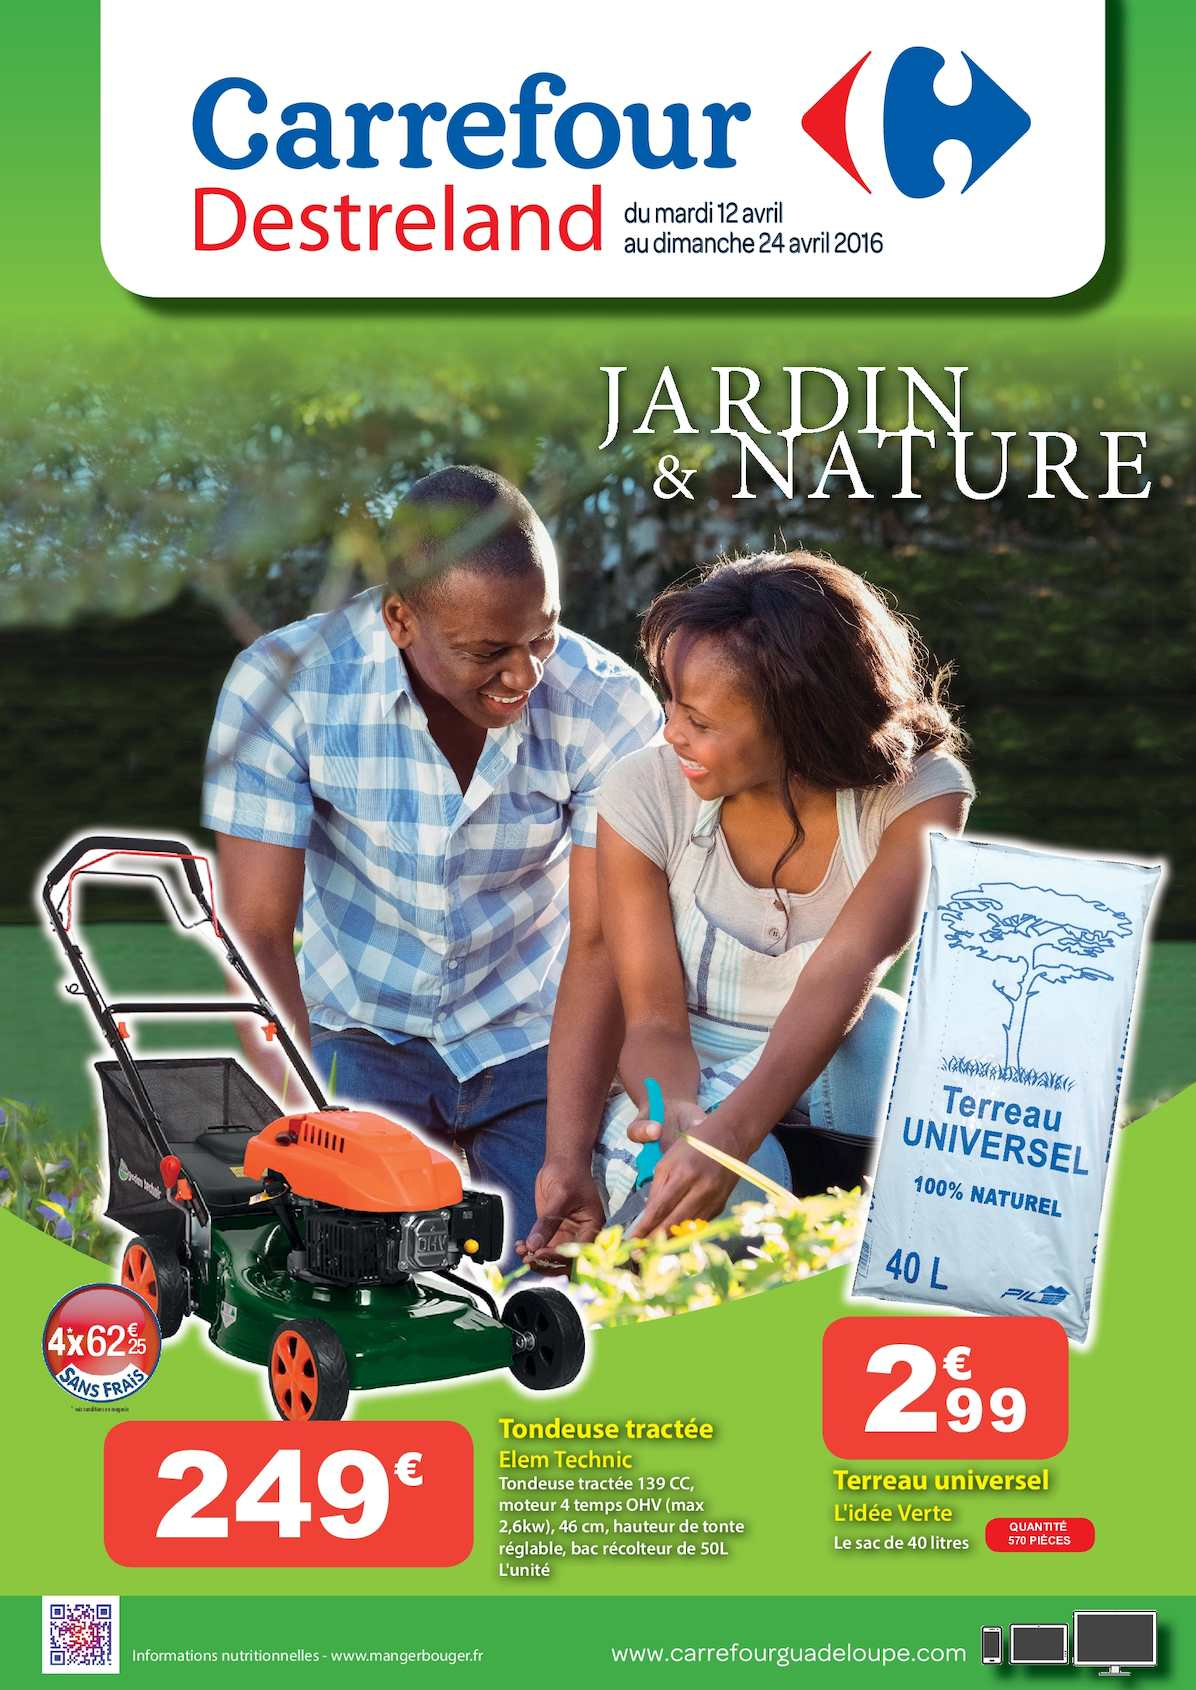 Calaméo - Carrefour Catalogue Jardin & Nature à Transat Jardin Carrefour